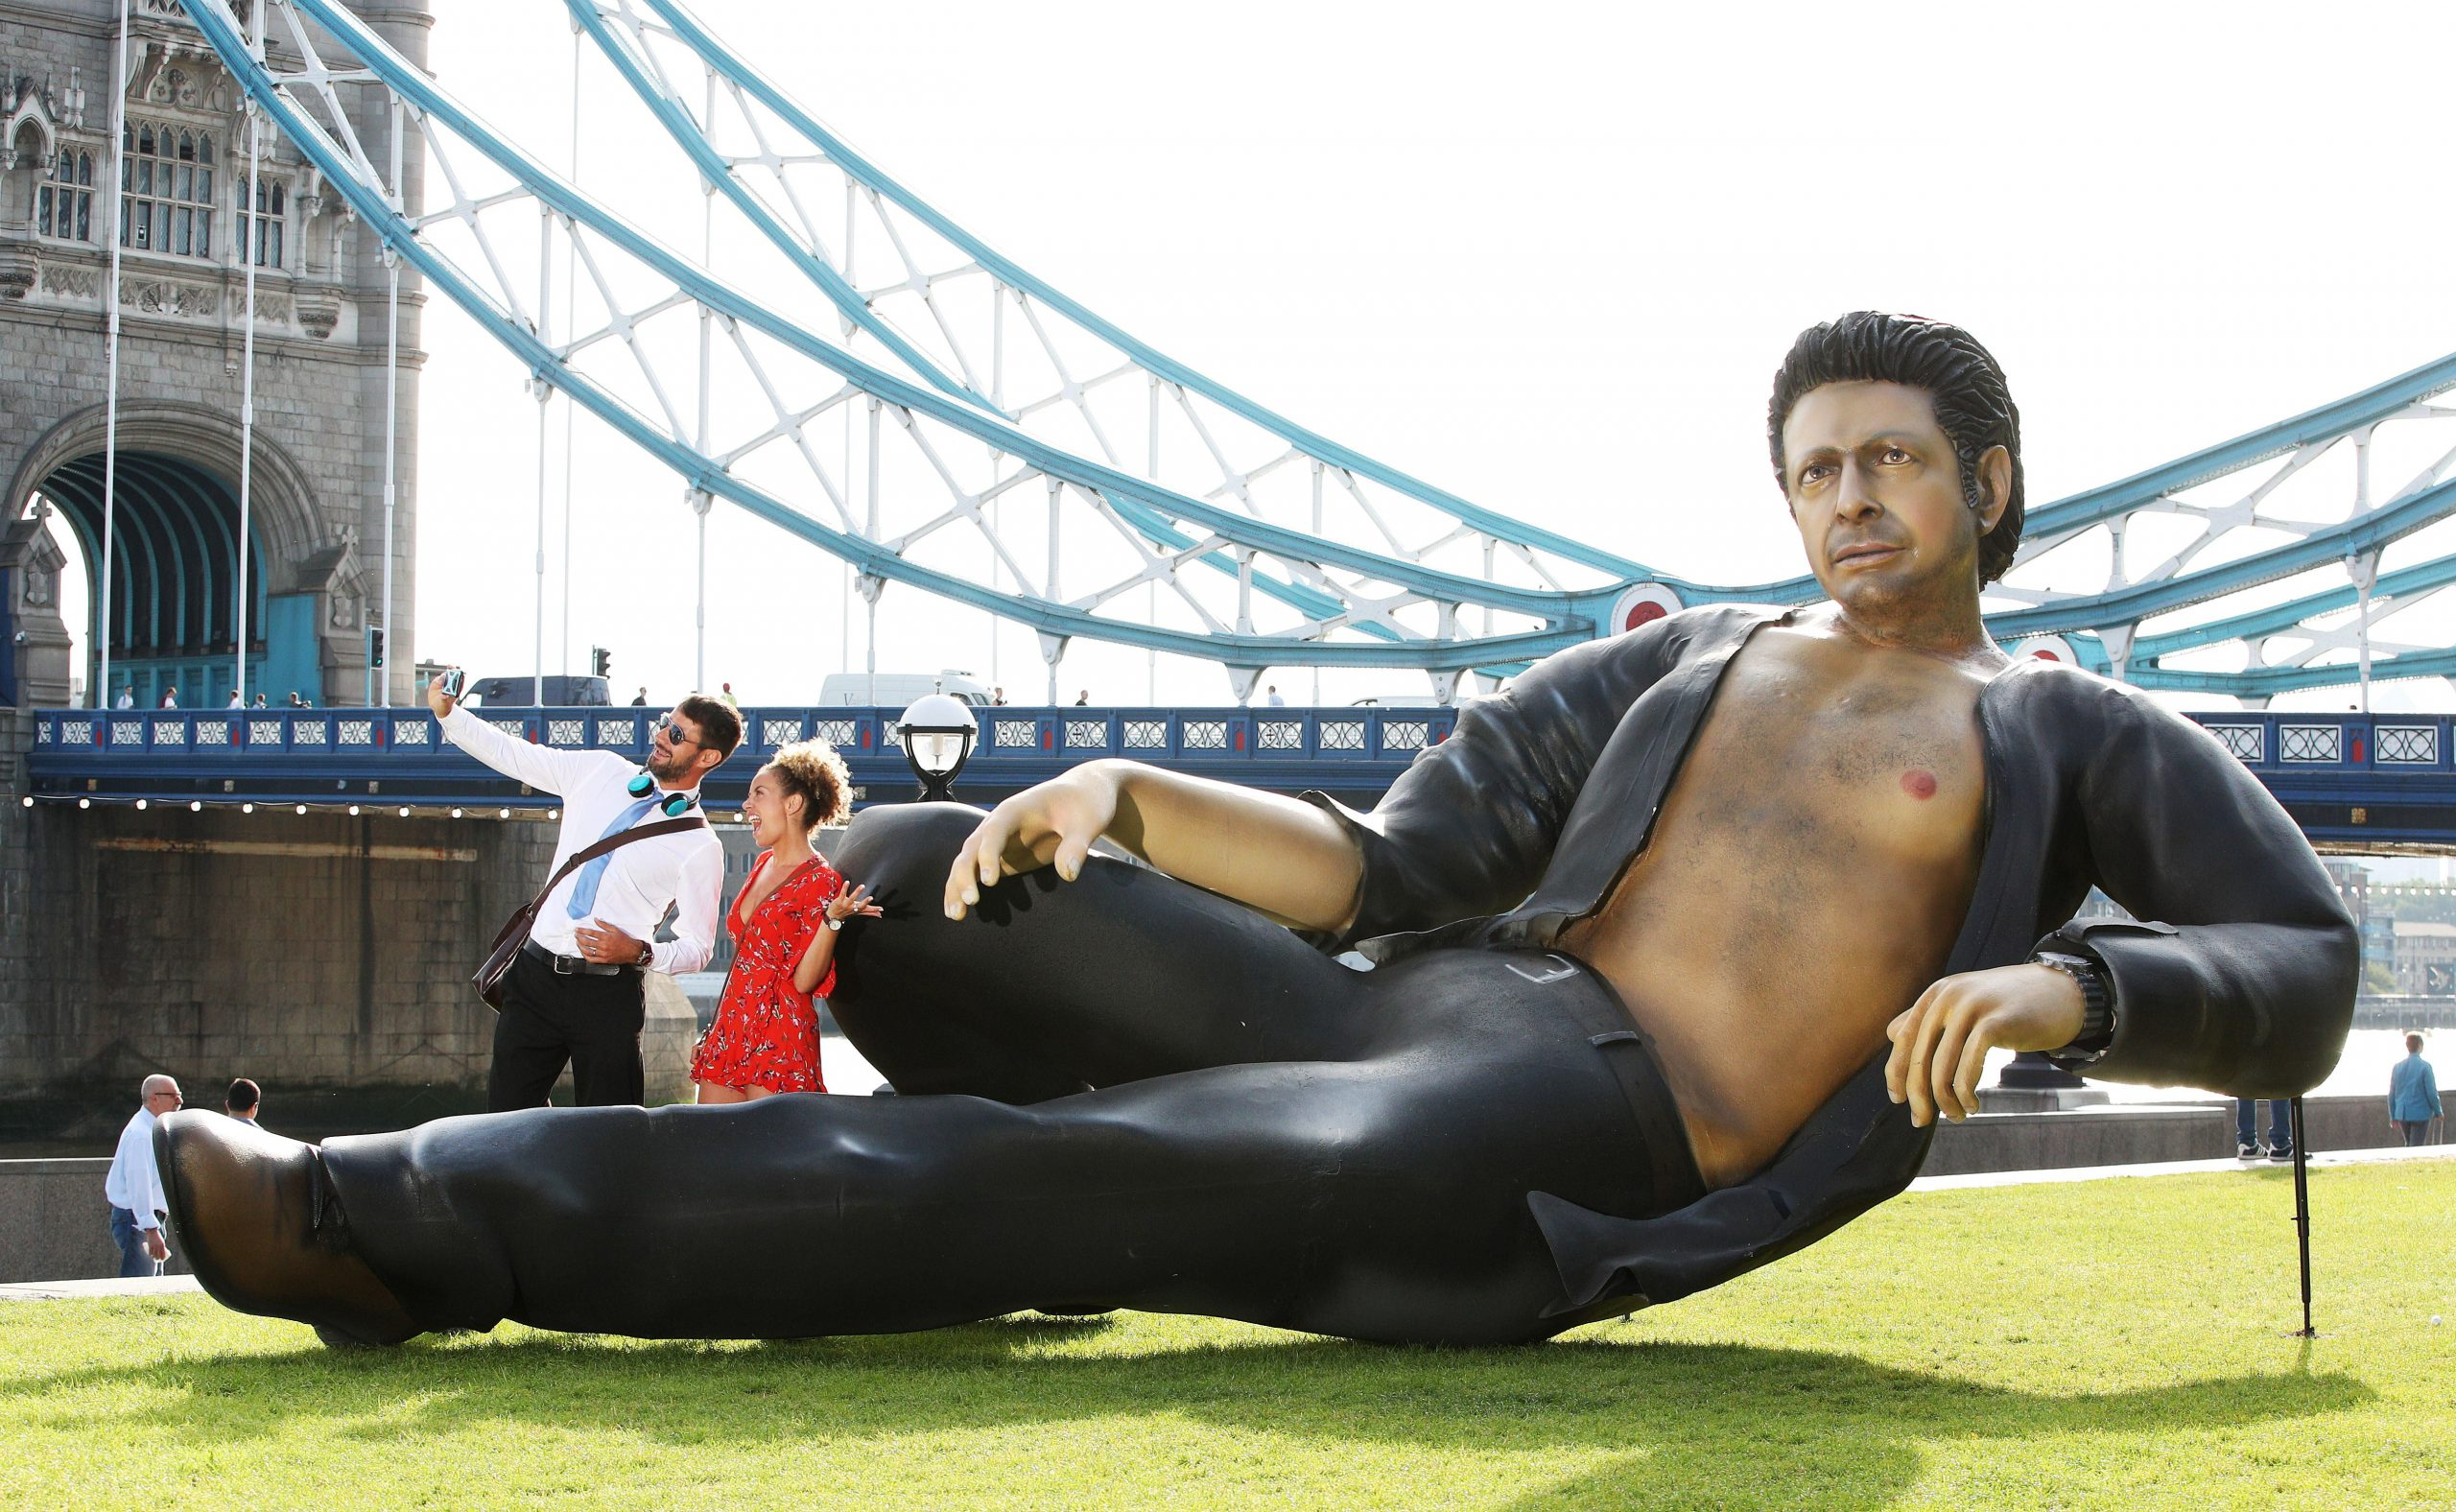 There is a 25 Foot Jeff Goldblum Statue in London